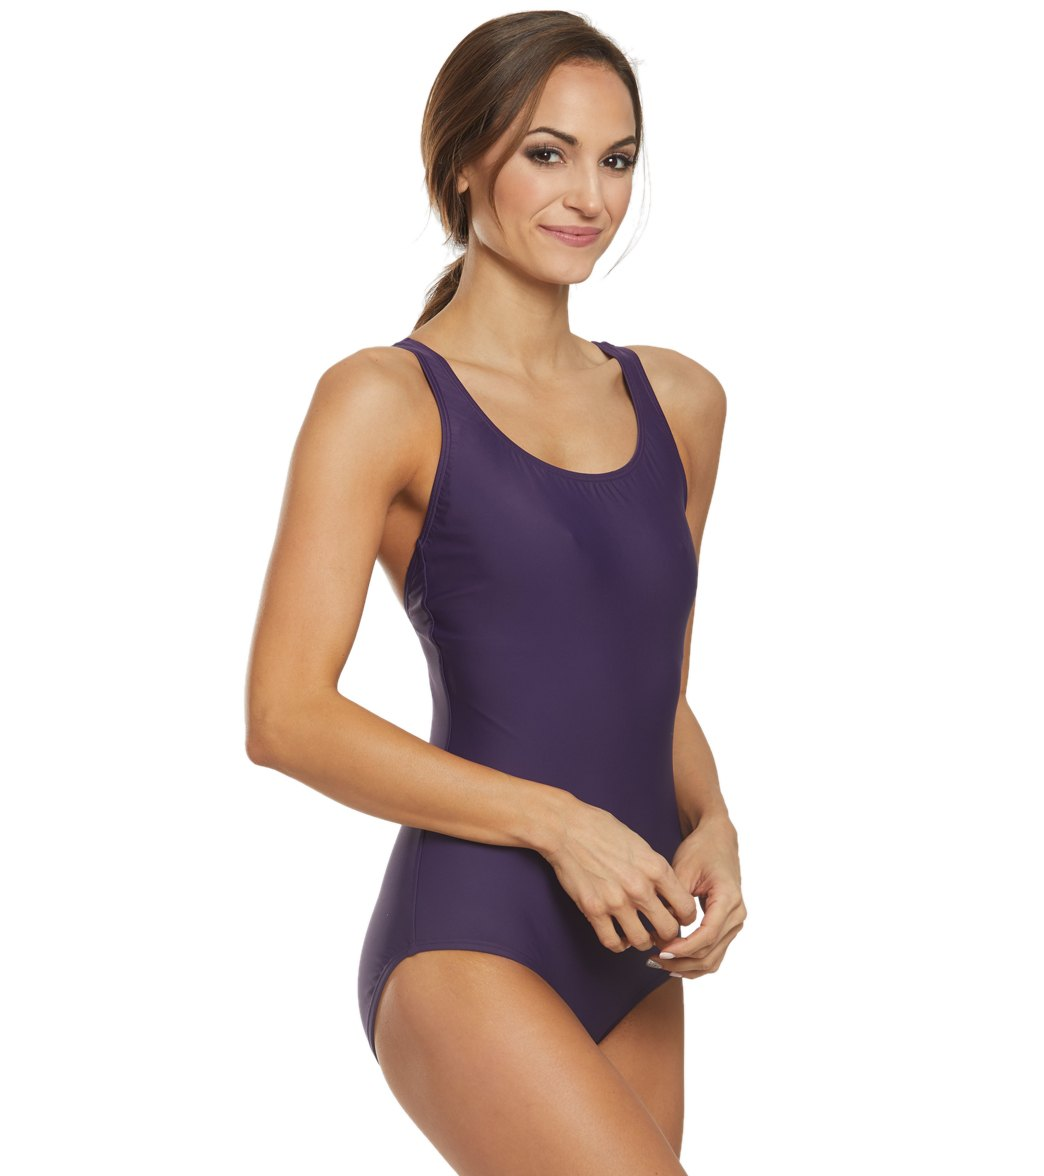 d699b51fb24 Speedo Moderate Ultraback One Piece Swimsuit at SwimOutlet.com ...